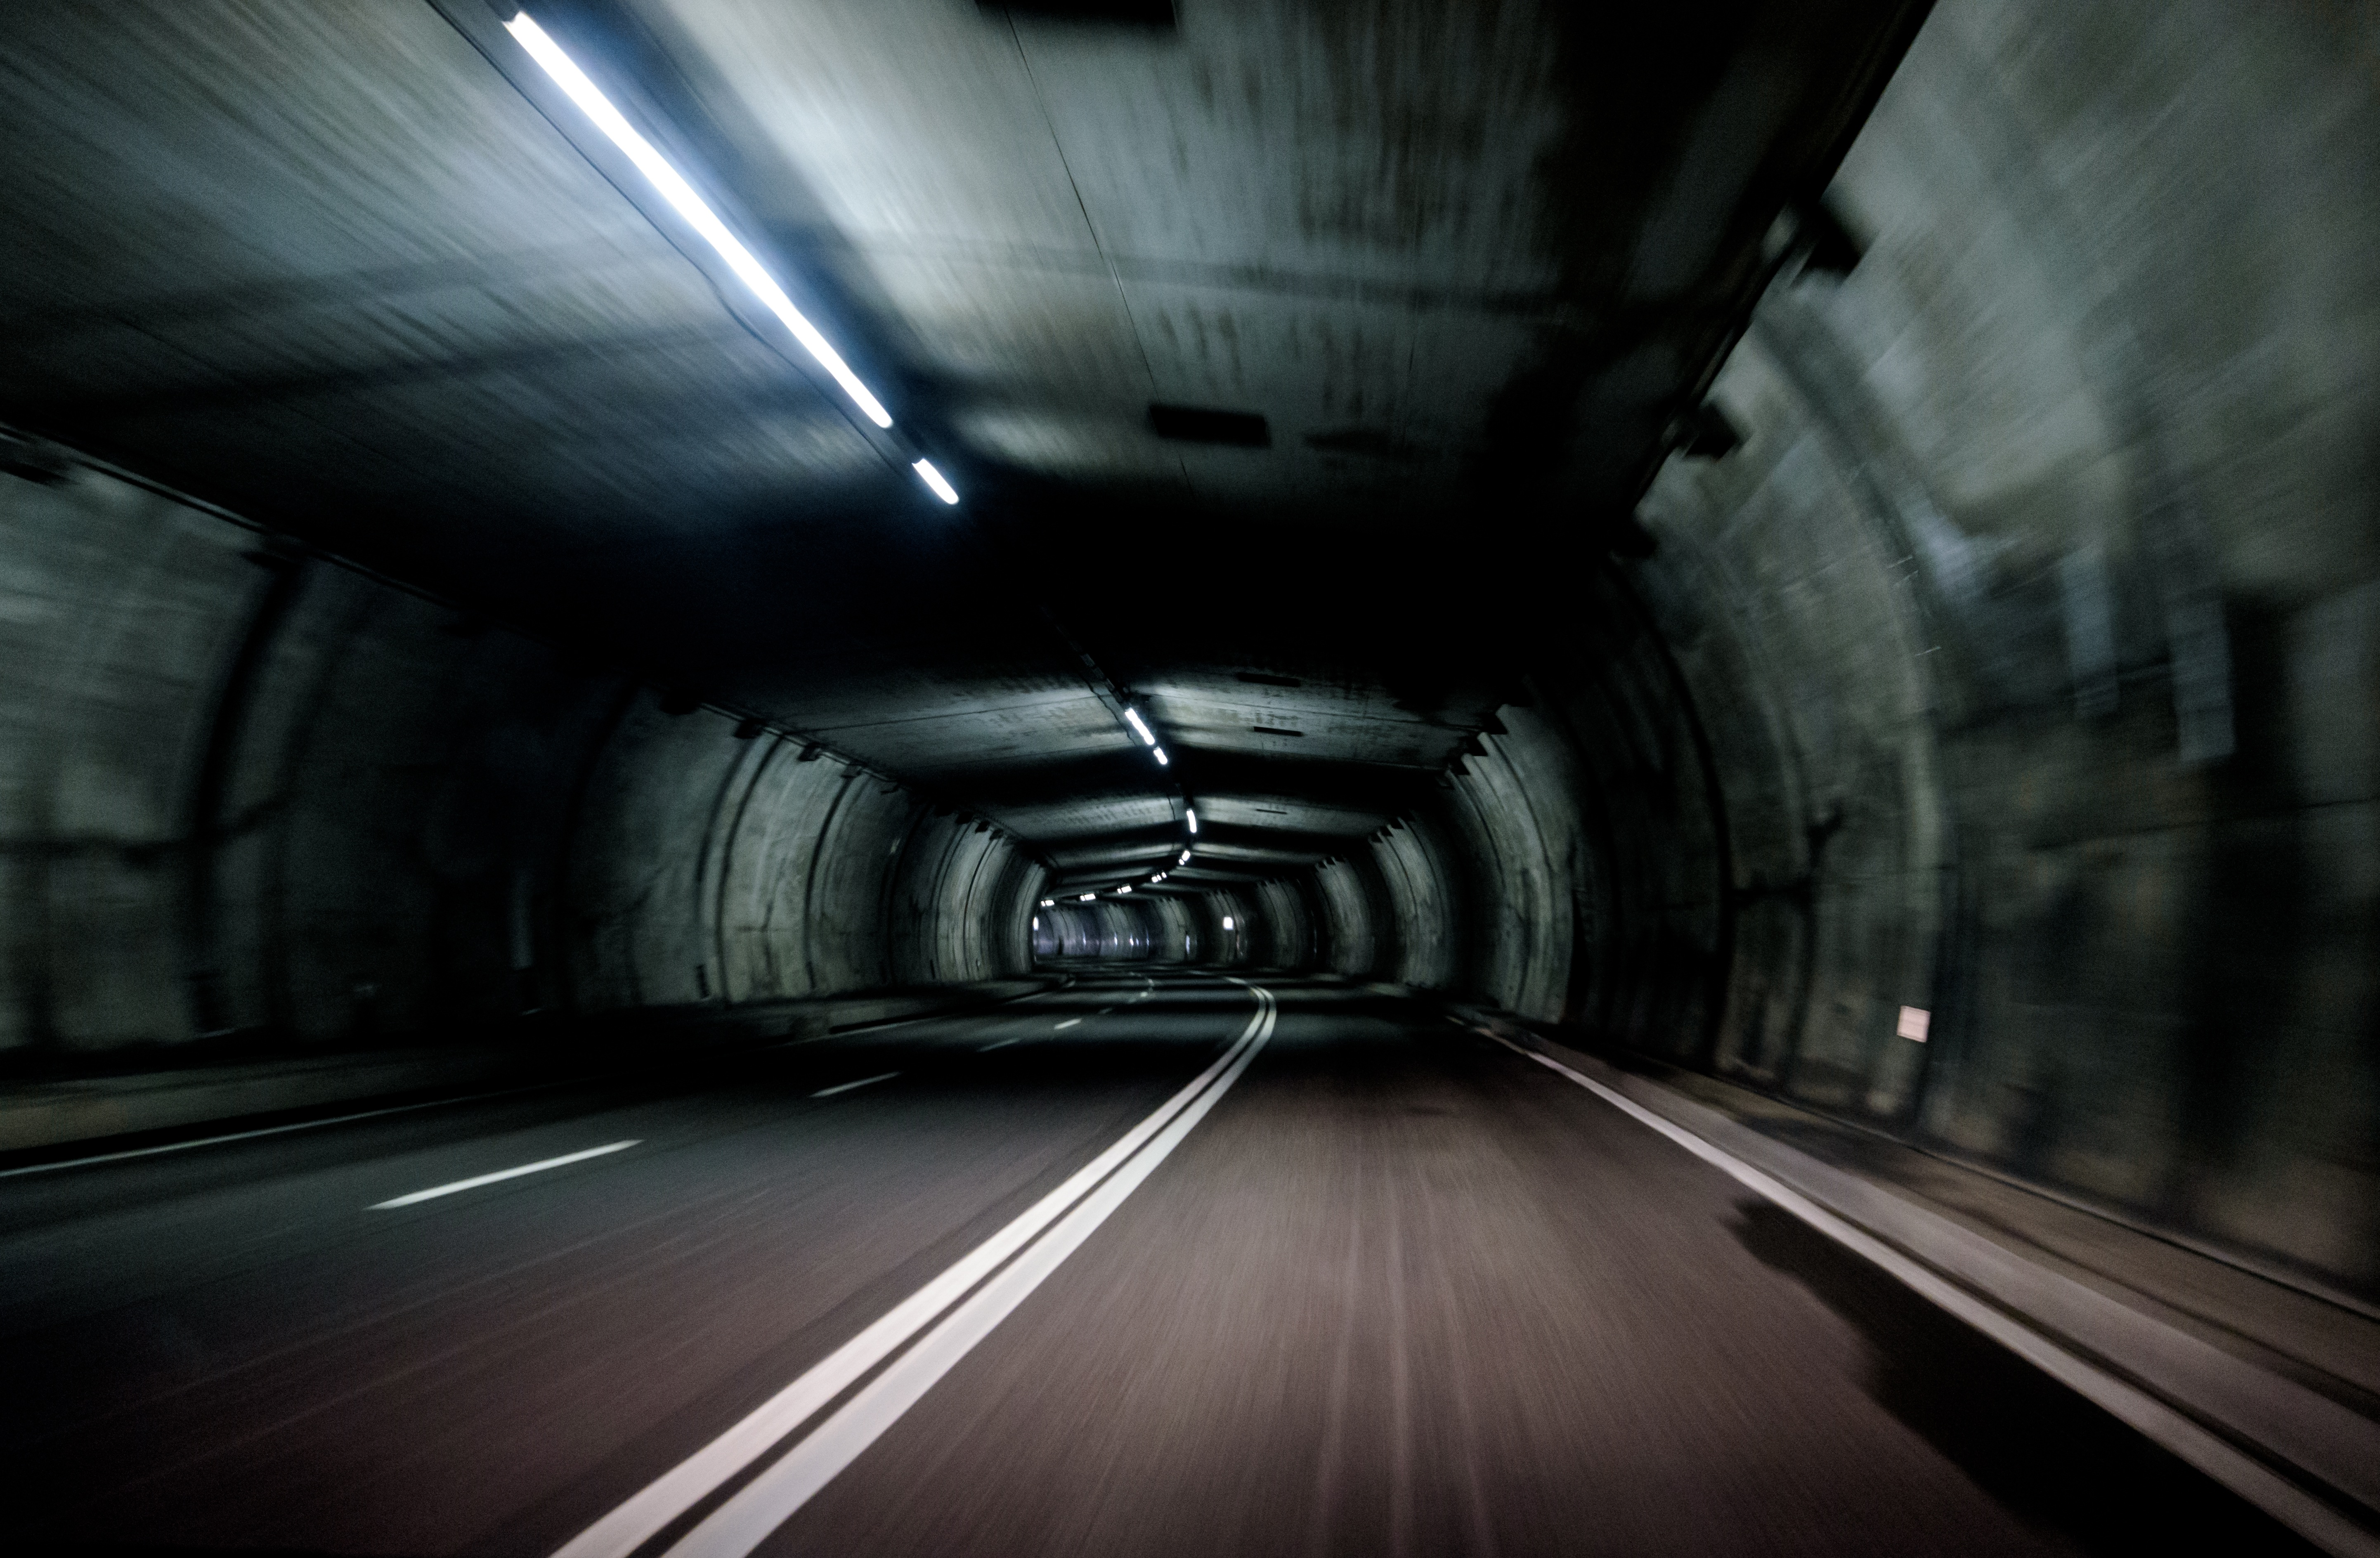 Road tunnel, tunnel, road, underground, under water, white and black, tunnel